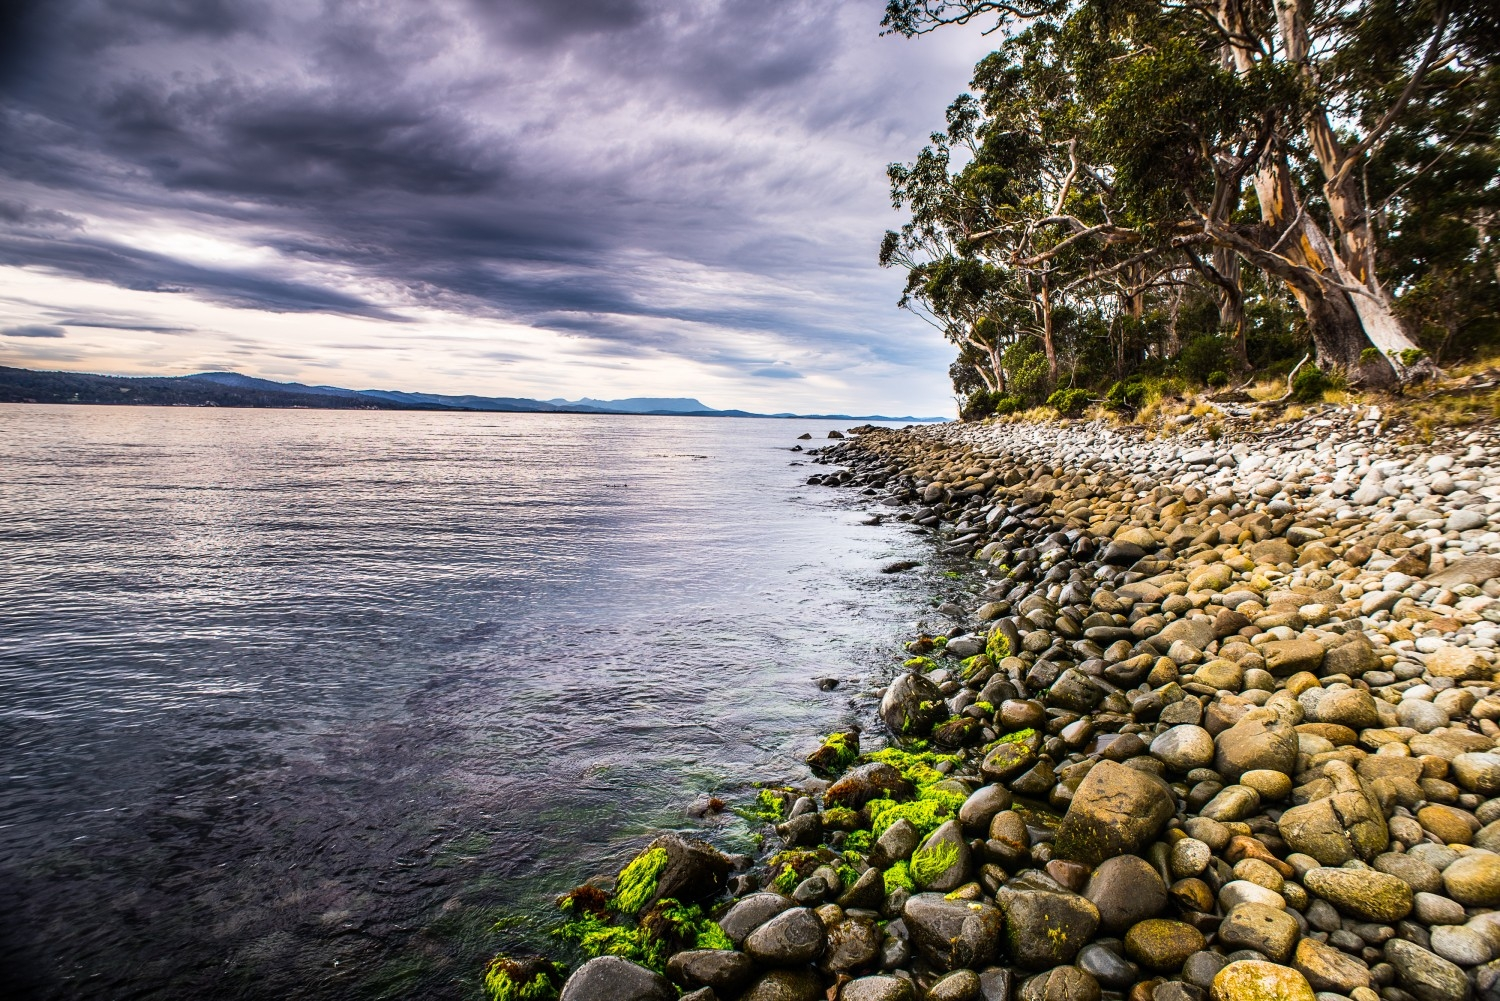 East Cove, Bruny Island, the site of former whaling haul-outs.